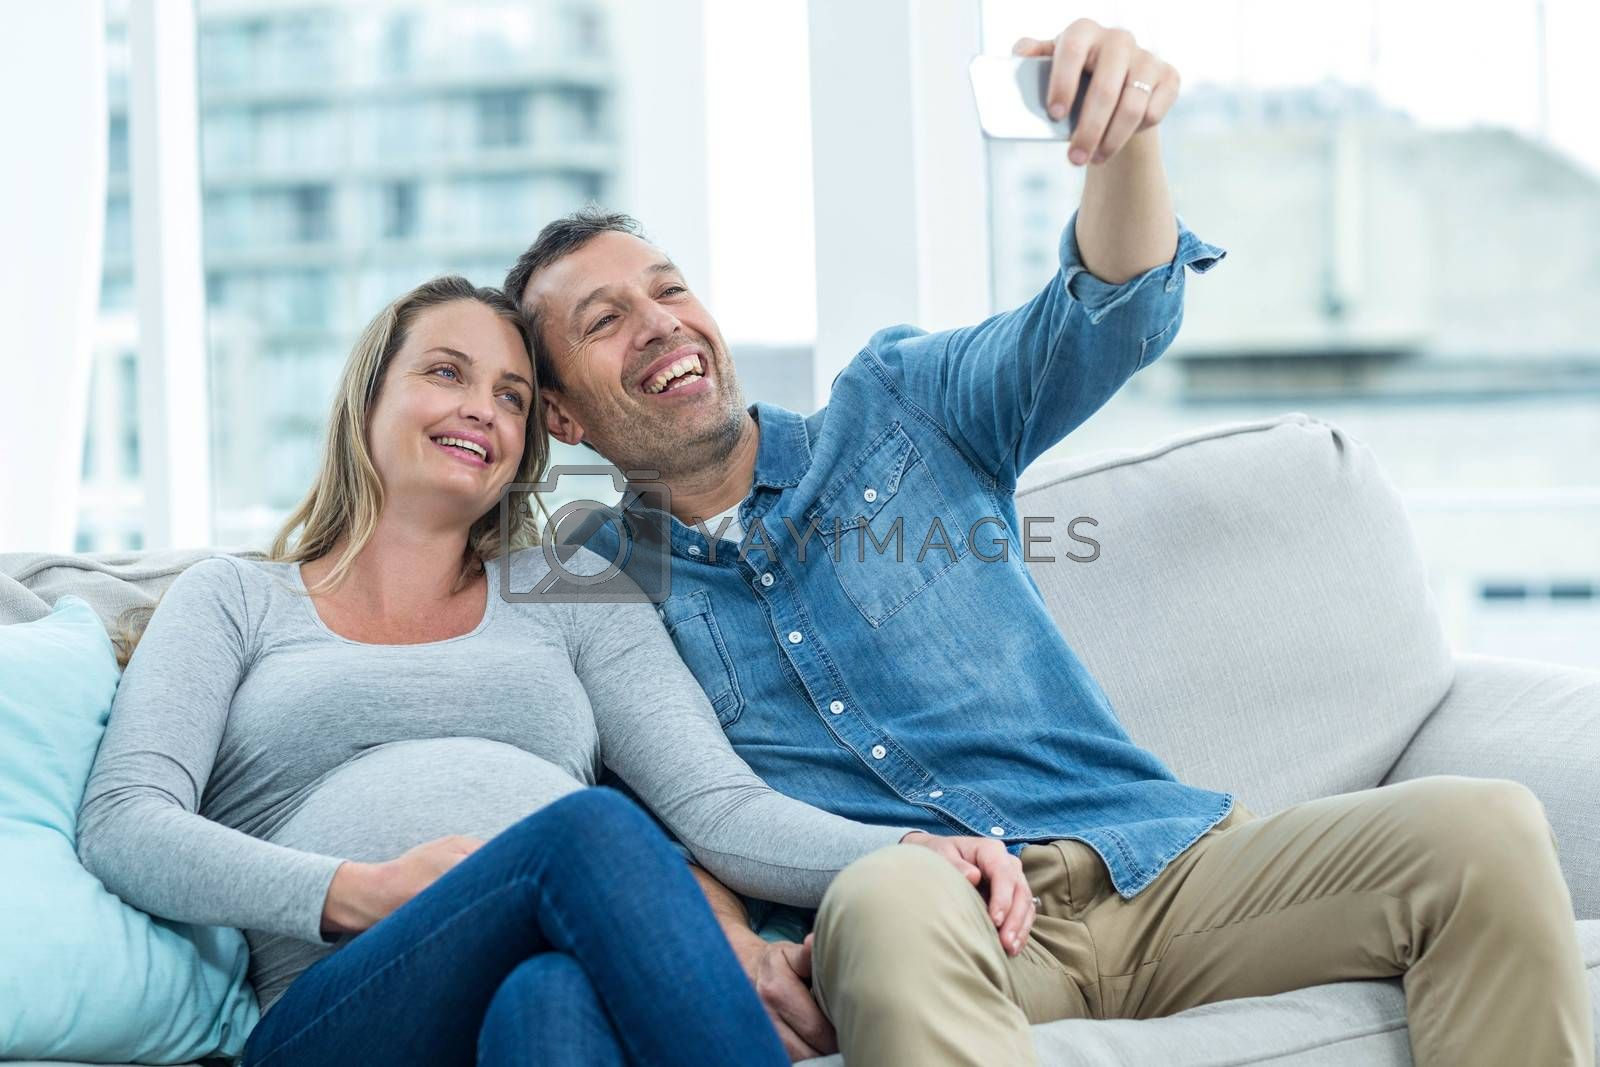 Couple sitting on sofa and taking a selfie on smartphone